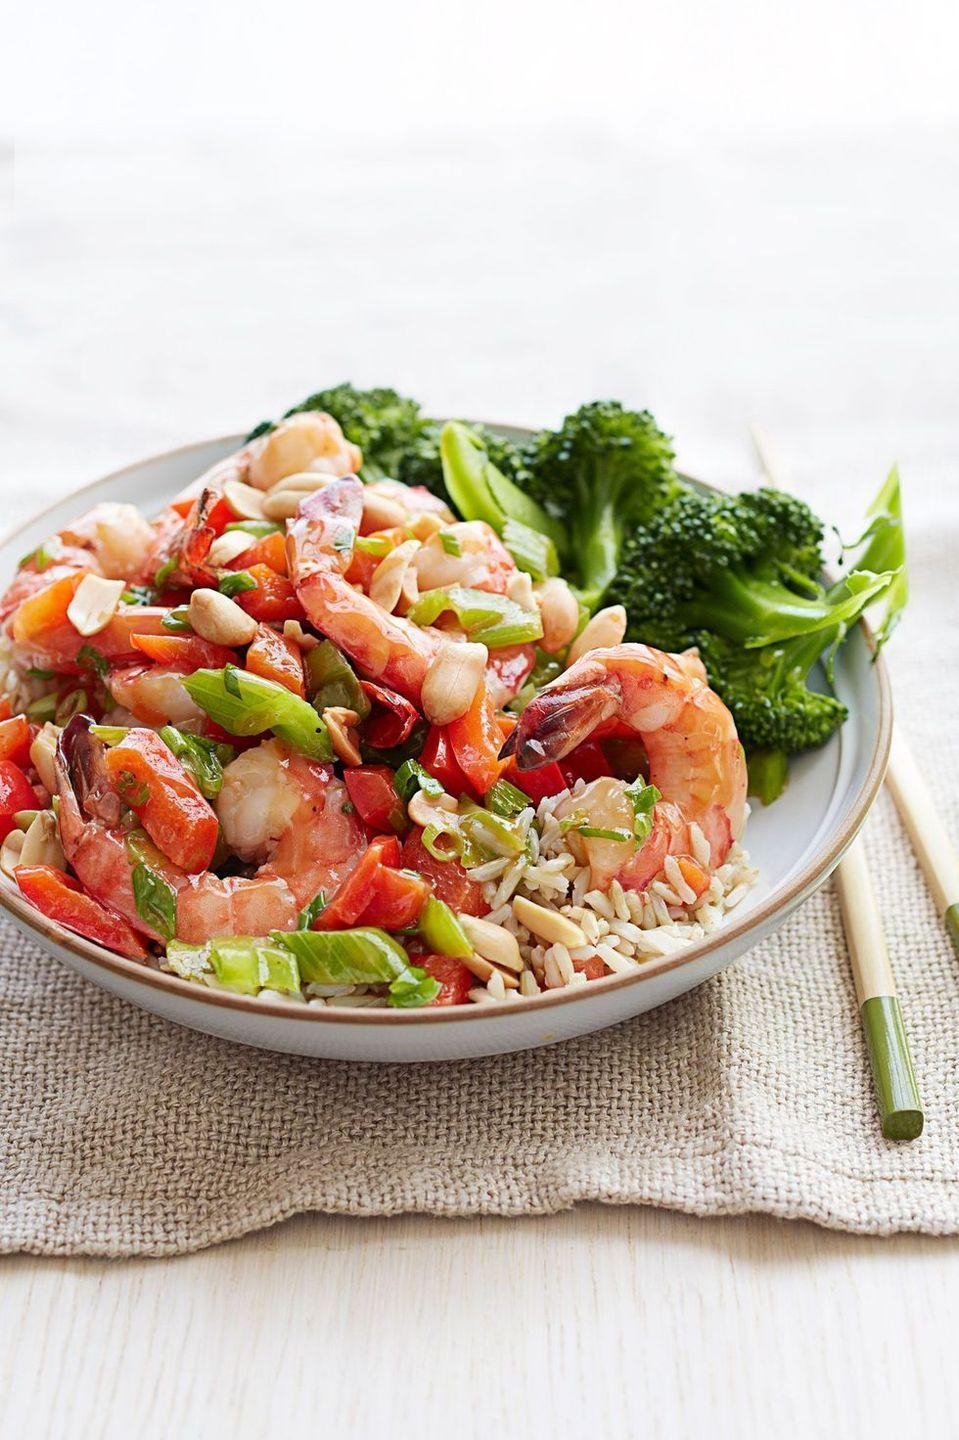 """<p>Greens, proteins, grains —you've got all your bases covered with this well-balanced meal. </p><p><em><a href=""""https://www.goodhousekeeping.com/food-recipes/a15598/kung-pao-shrimp-recipe-ghk0214/"""" rel=""""nofollow noopener"""" target=""""_blank"""" data-ylk=""""slk:Get the recipe for Kung Pao Shrimp »"""" class=""""link rapid-noclick-resp"""">Get the recipe for Kung Pao Shrimp »</a></em></p>"""